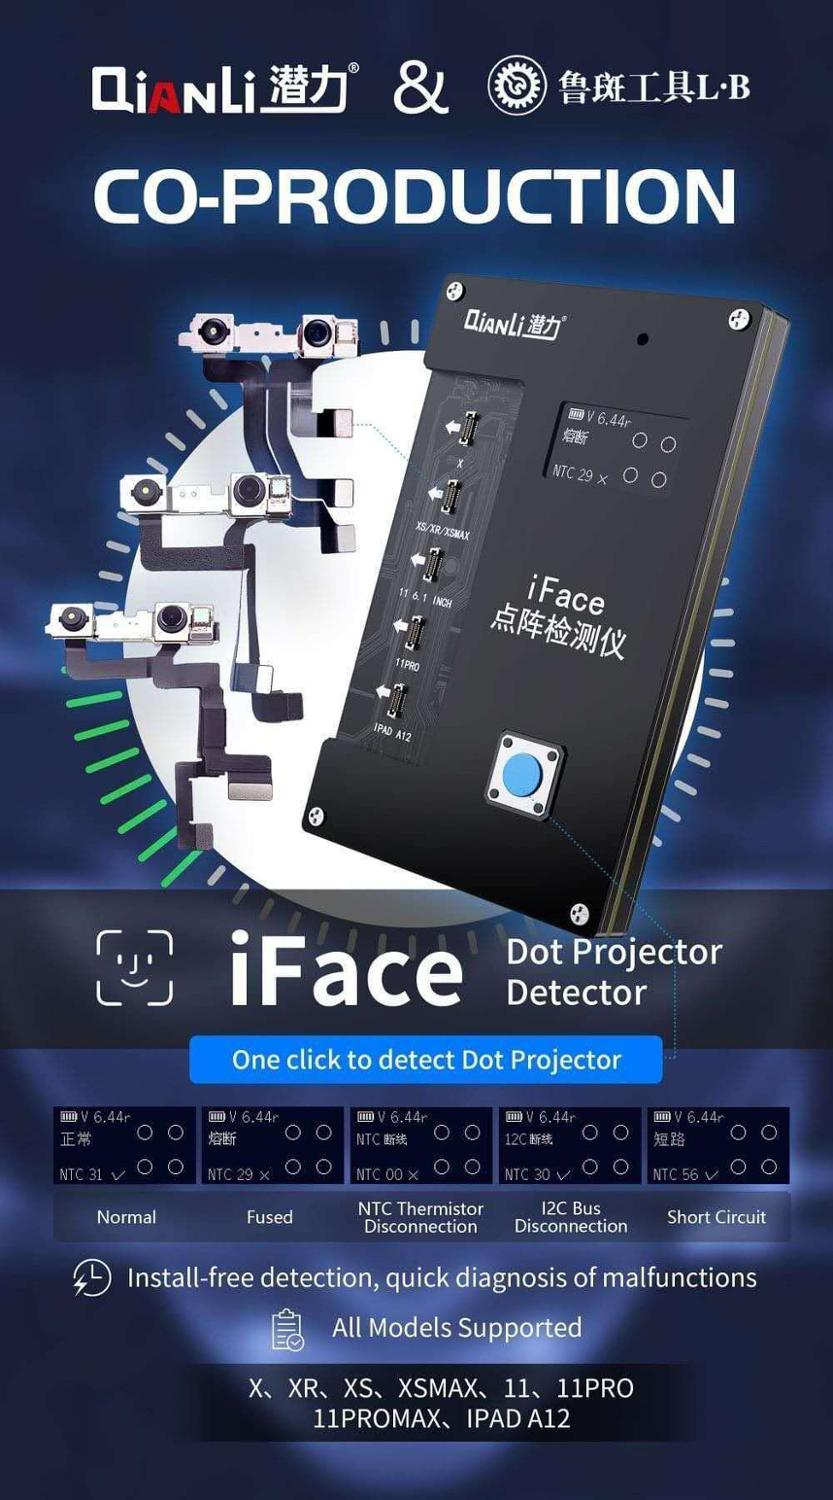 Qianli IFace Matrix Tester Face Dot Projector For iPHONE X-11 Pro Max iPAD A12 Face ID Testing Repair Quick Diagnosis Detection